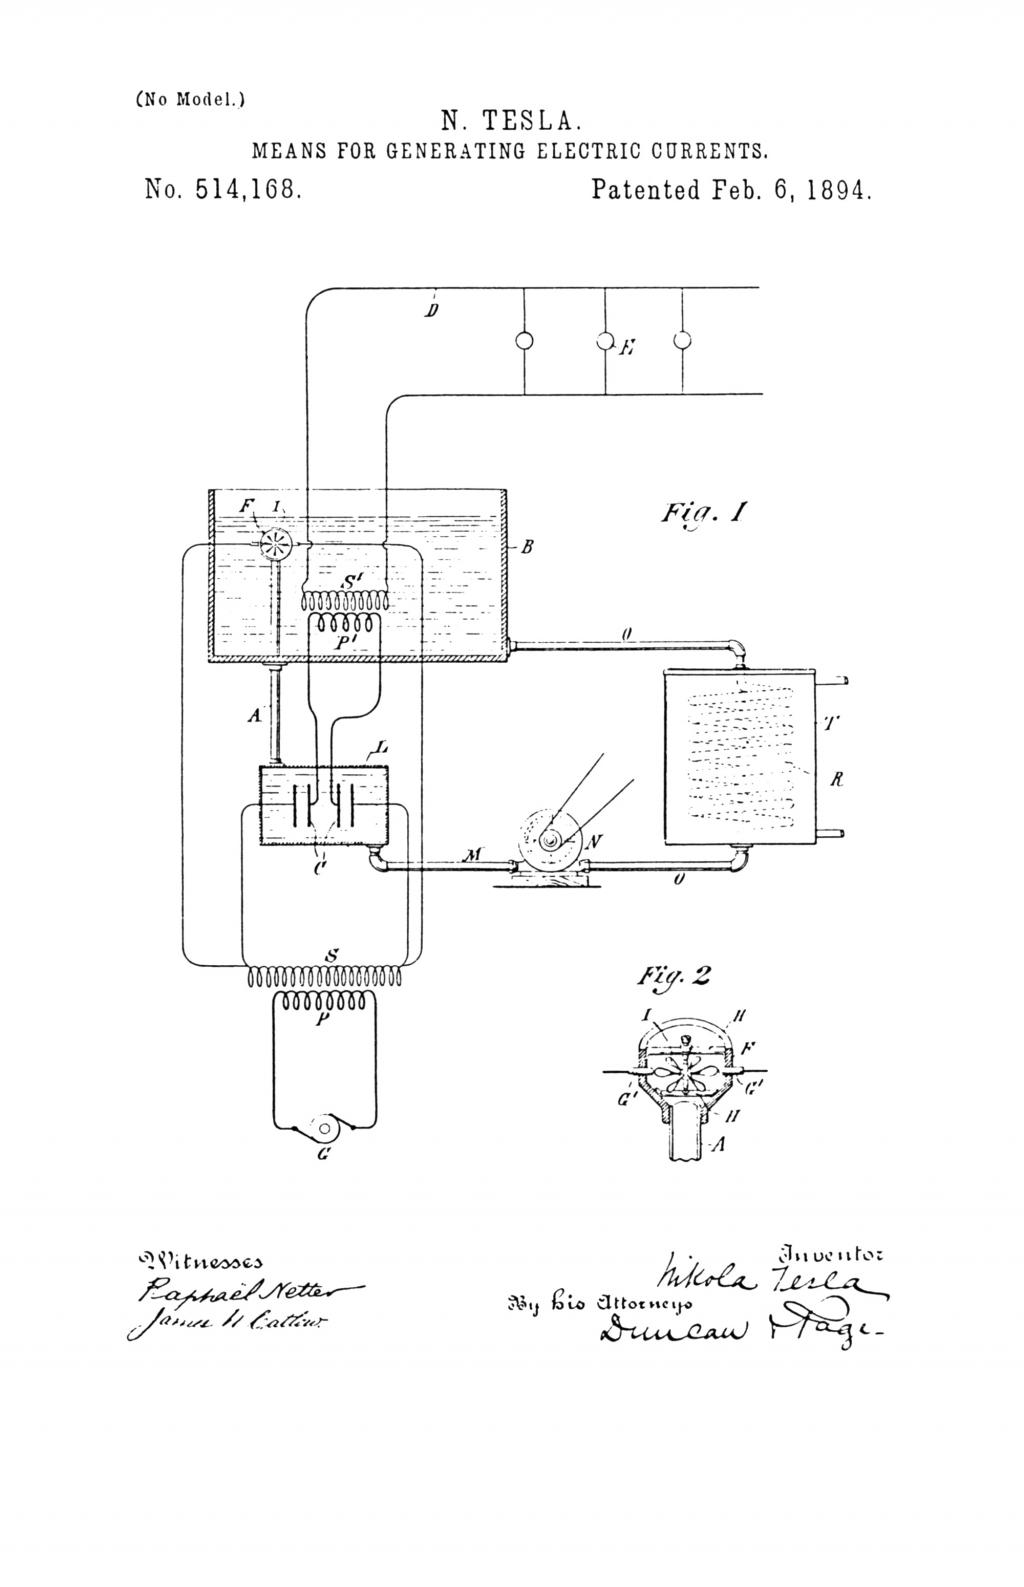 Nikola Tesla U.S. Patent 514,168 - Means for Generating Electric Currents - Image 1